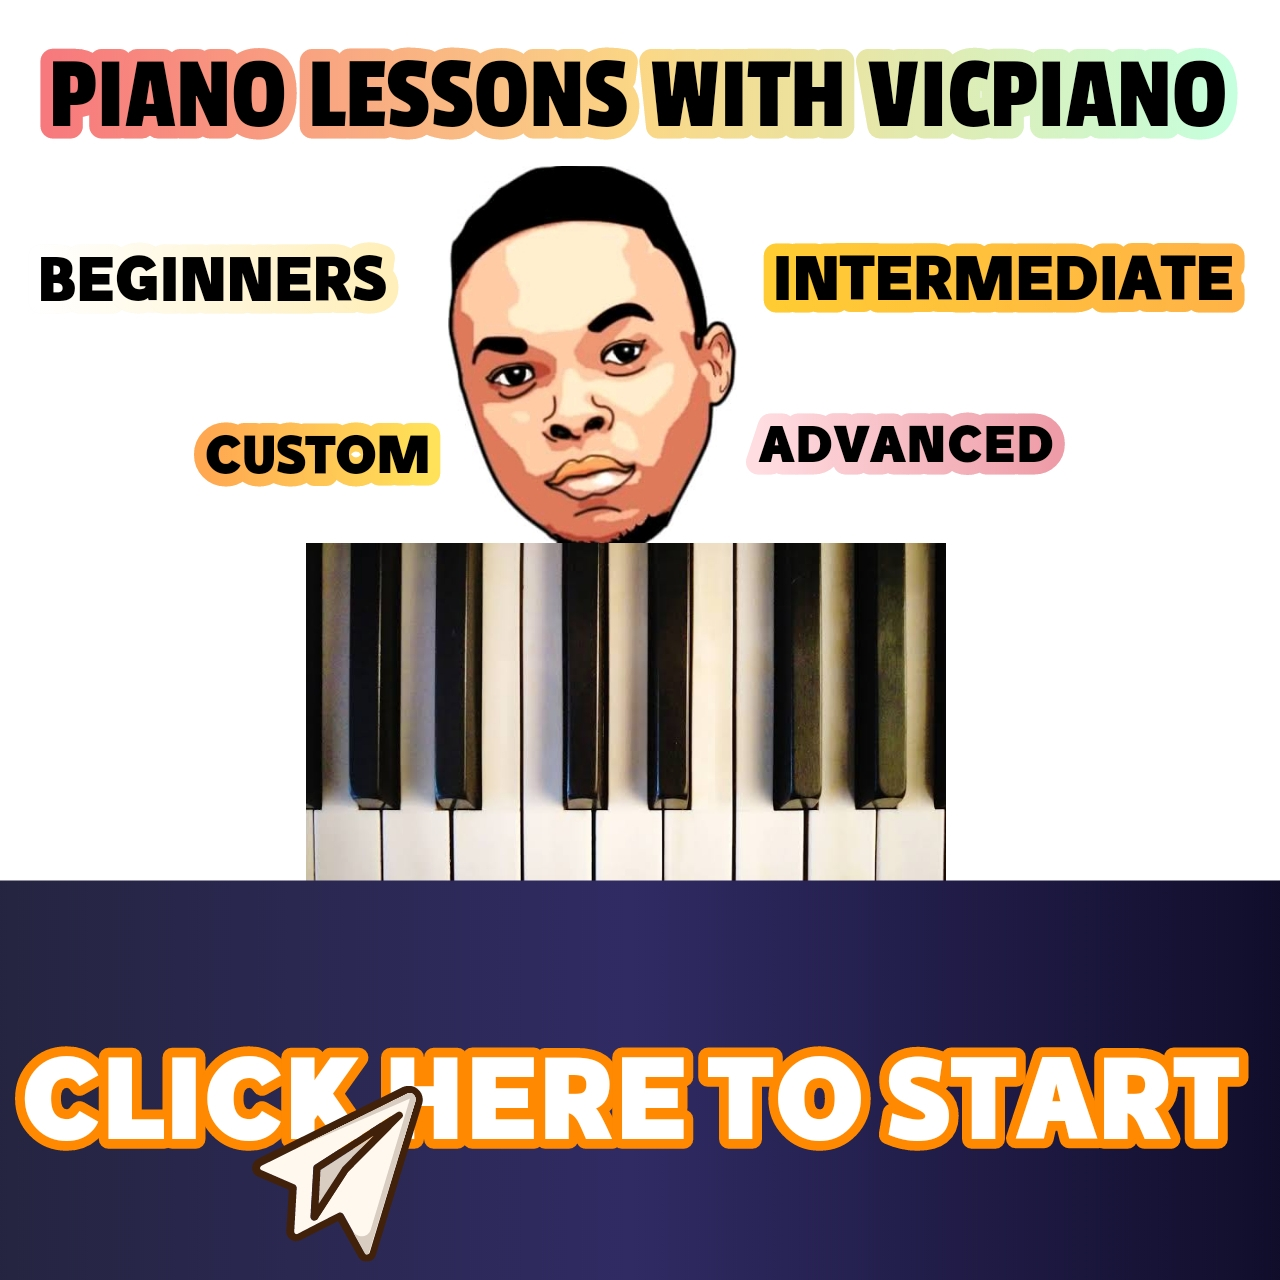 PIANO LESSONS WITH VICPIANO